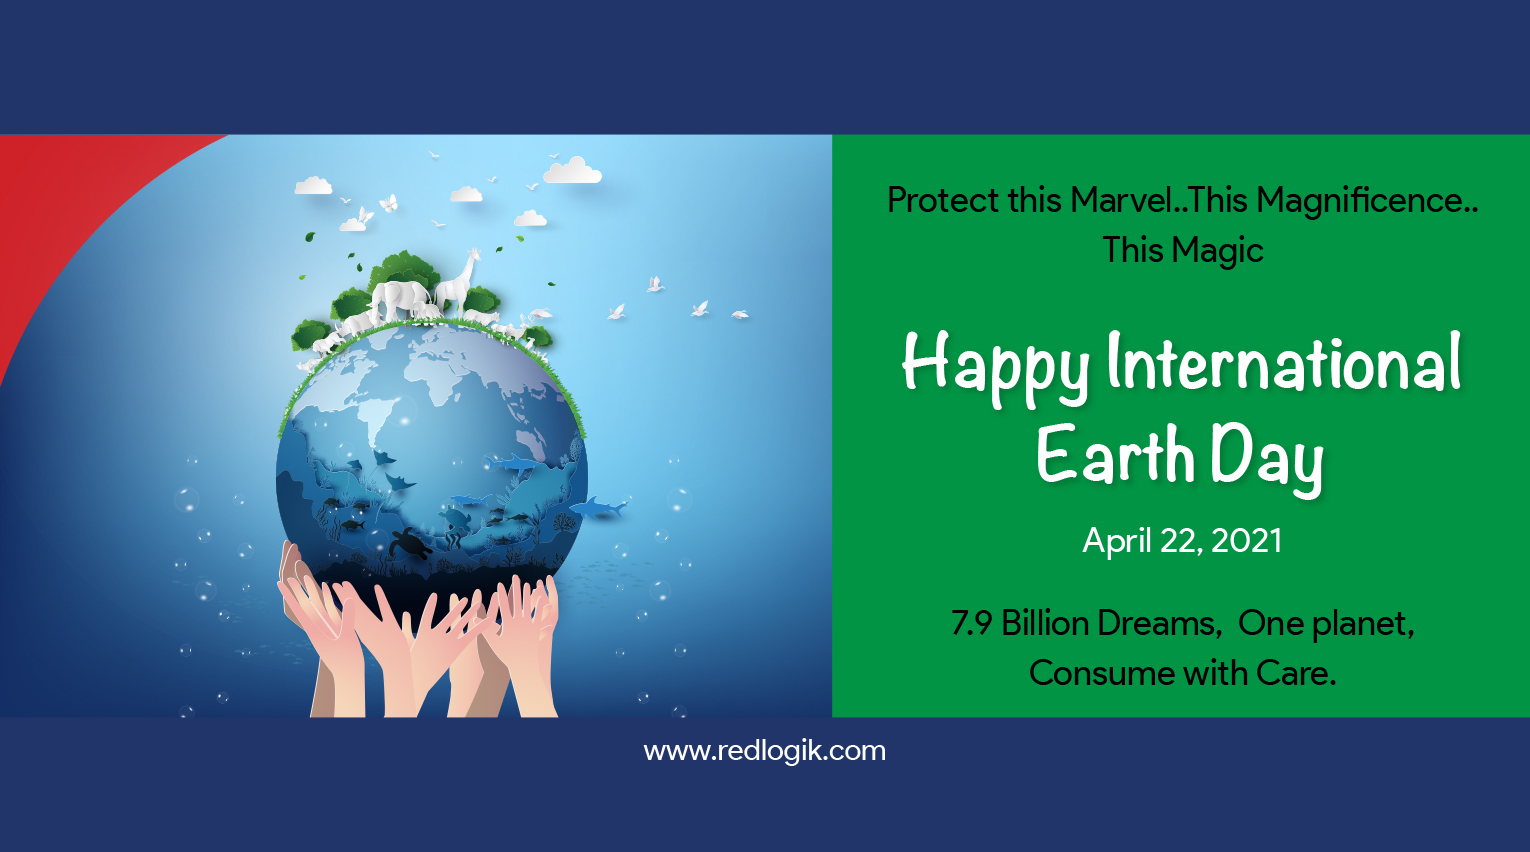 This International Earth Day we at Redlogik vow to co-exist towards a future that is sustainable, green, ethical and conscious.